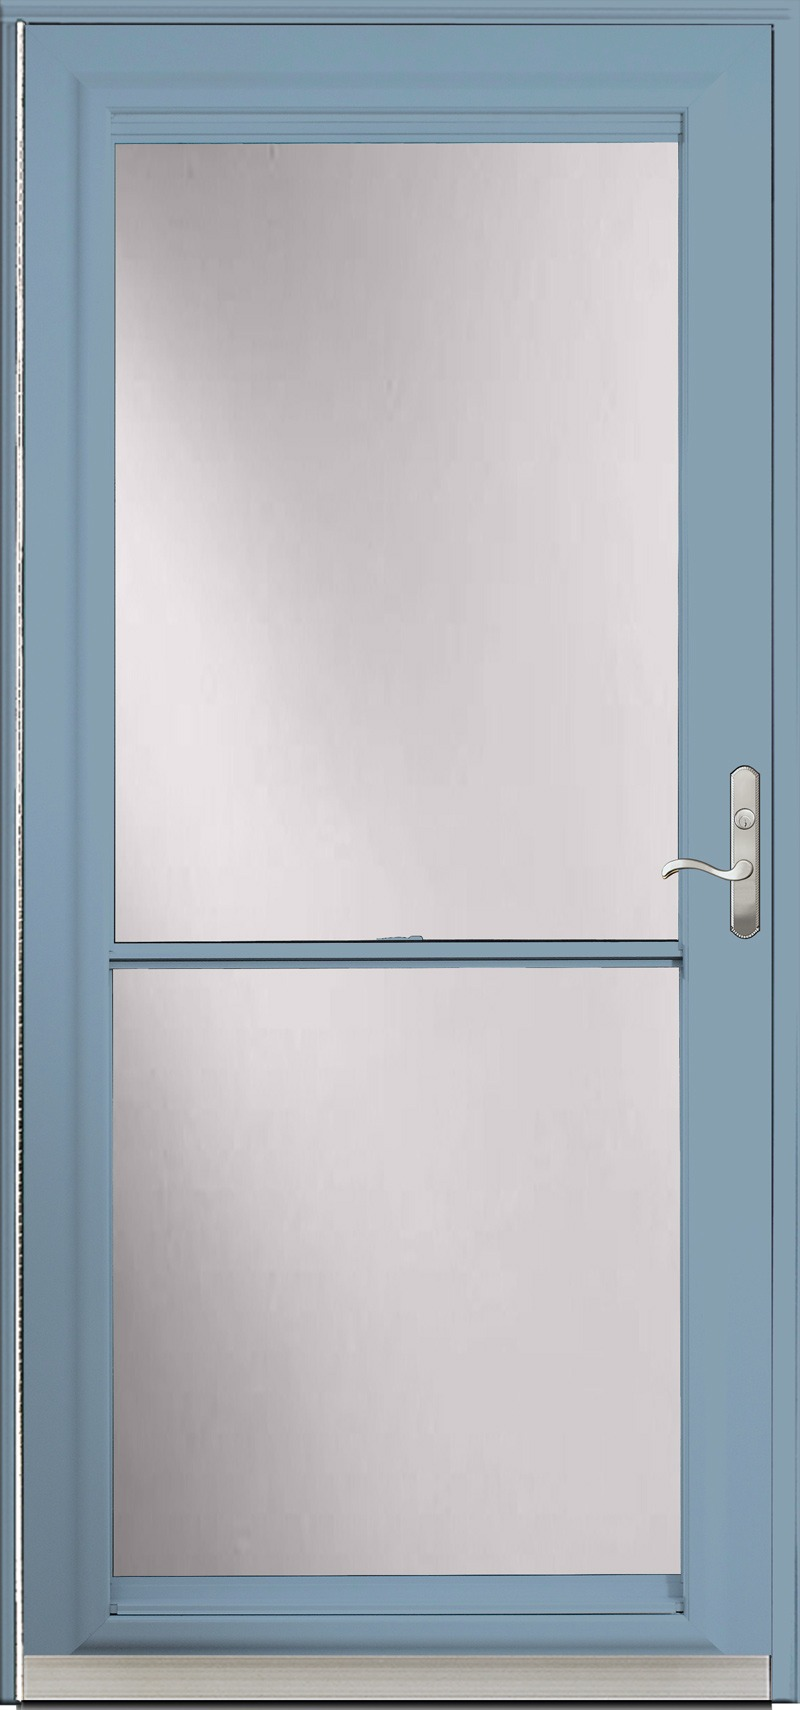 A blue door with frosted glass inside